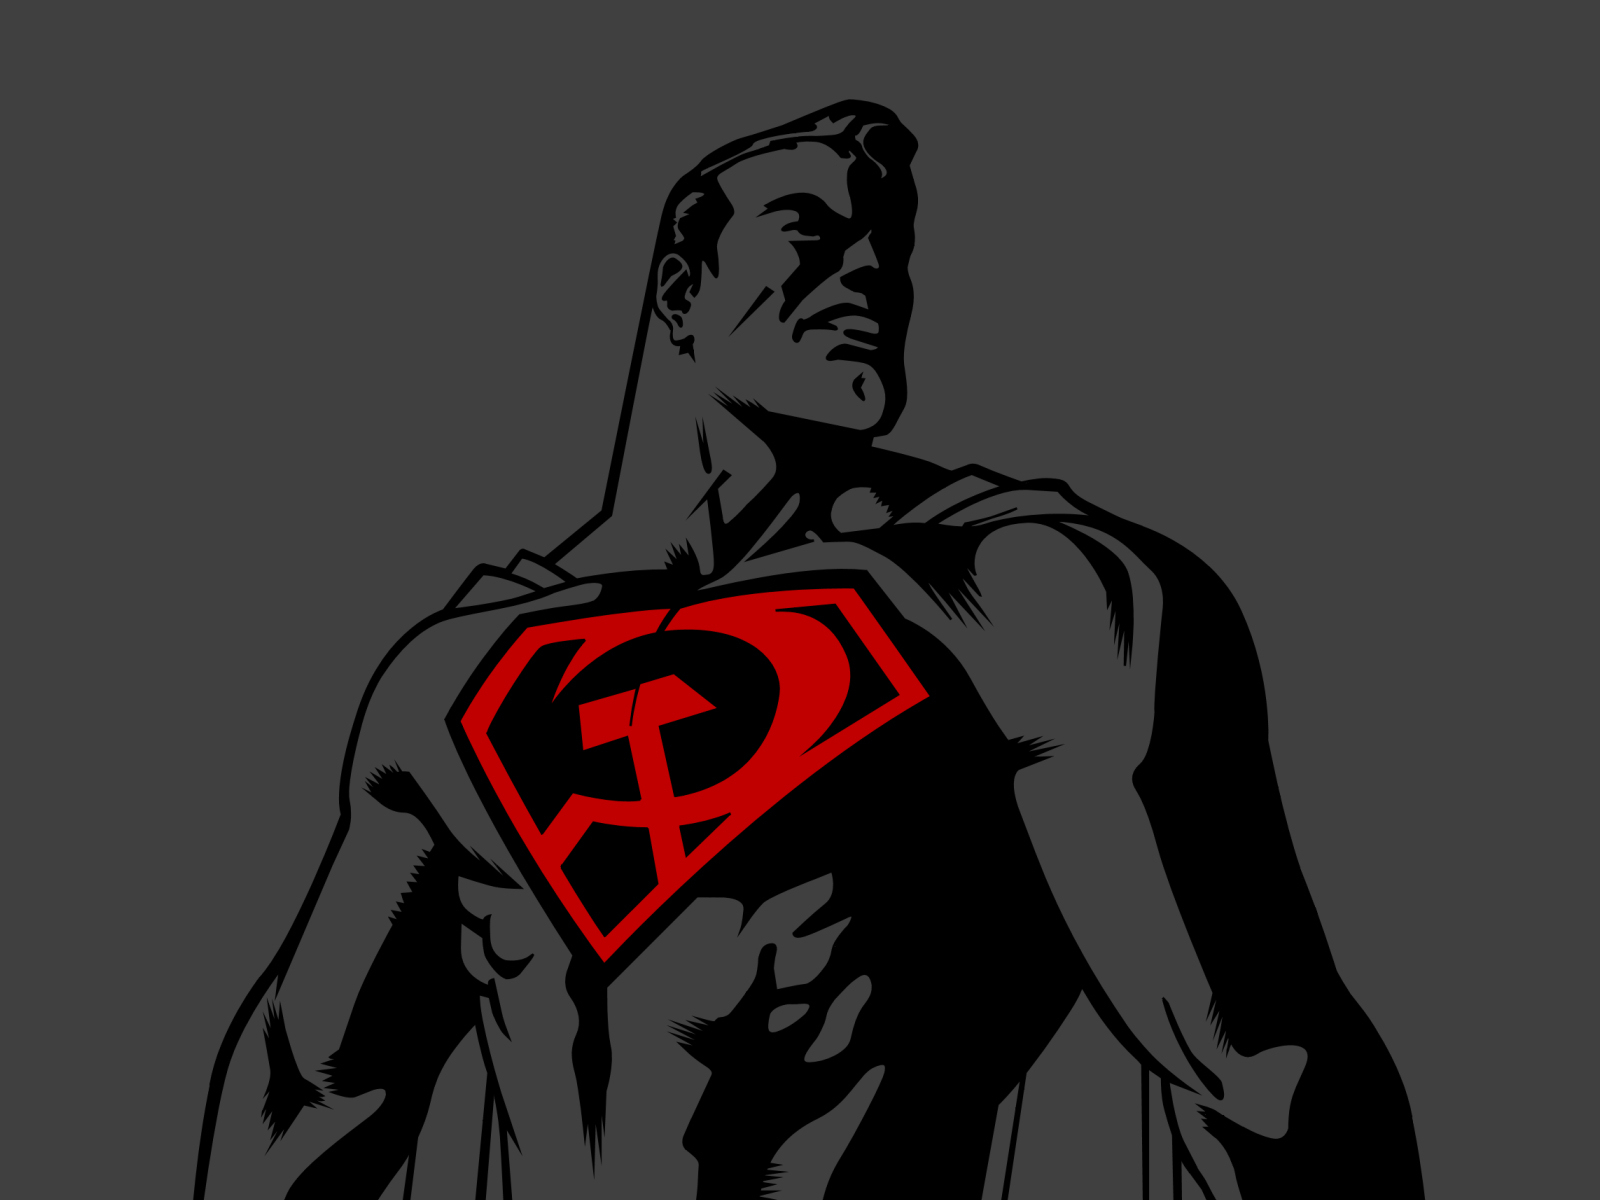 dc comics superman Communist HD Wallpaper